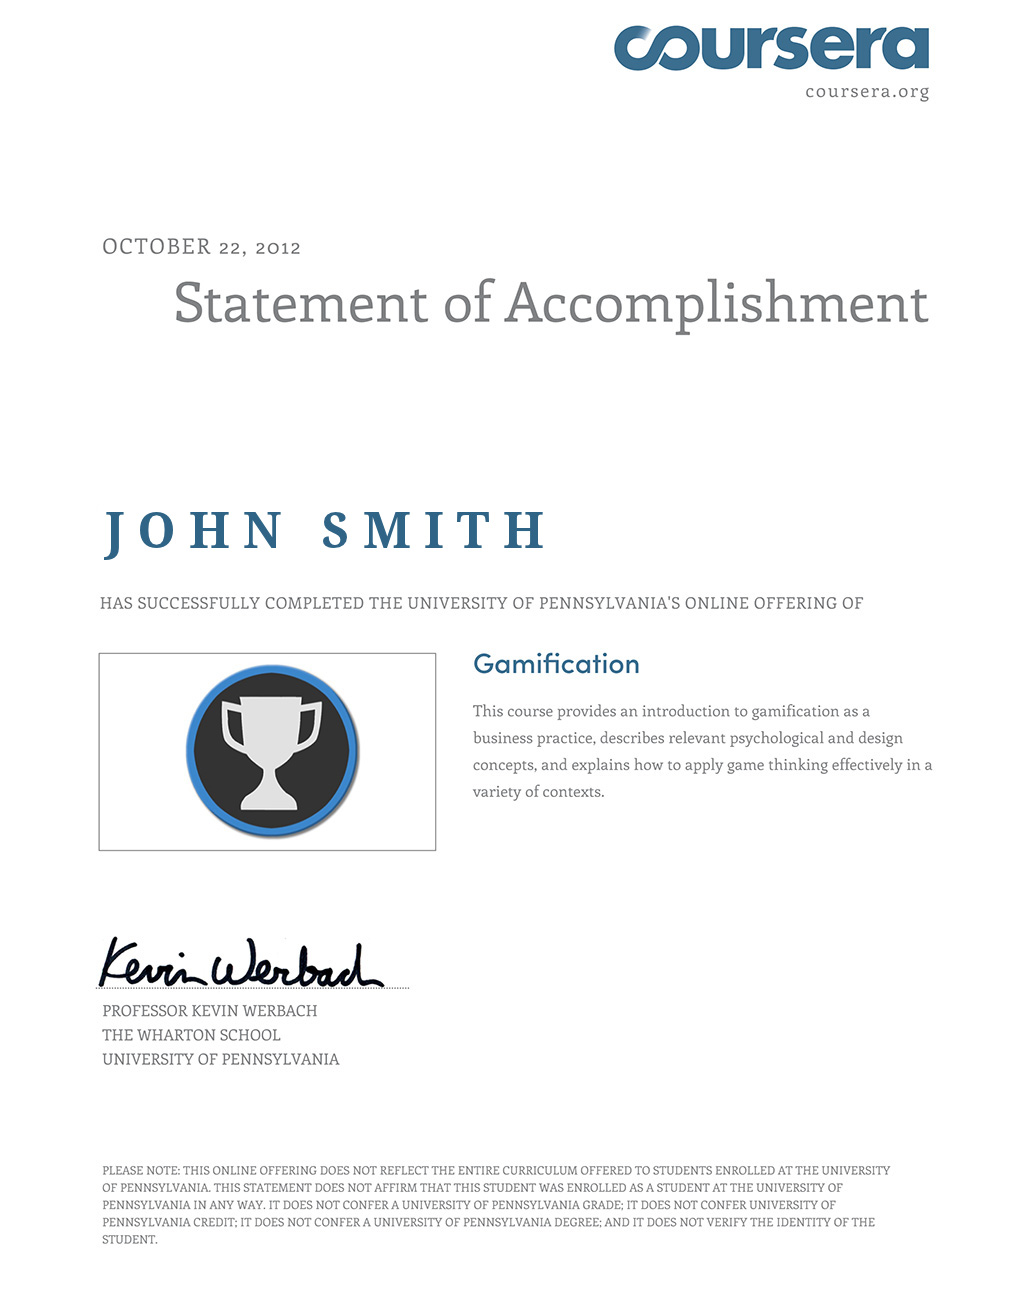 Myeducationpath john smith education passport this is my coursera certificate this is not real certificate this is just demonstration how the system works 1betcityfo Choice Image